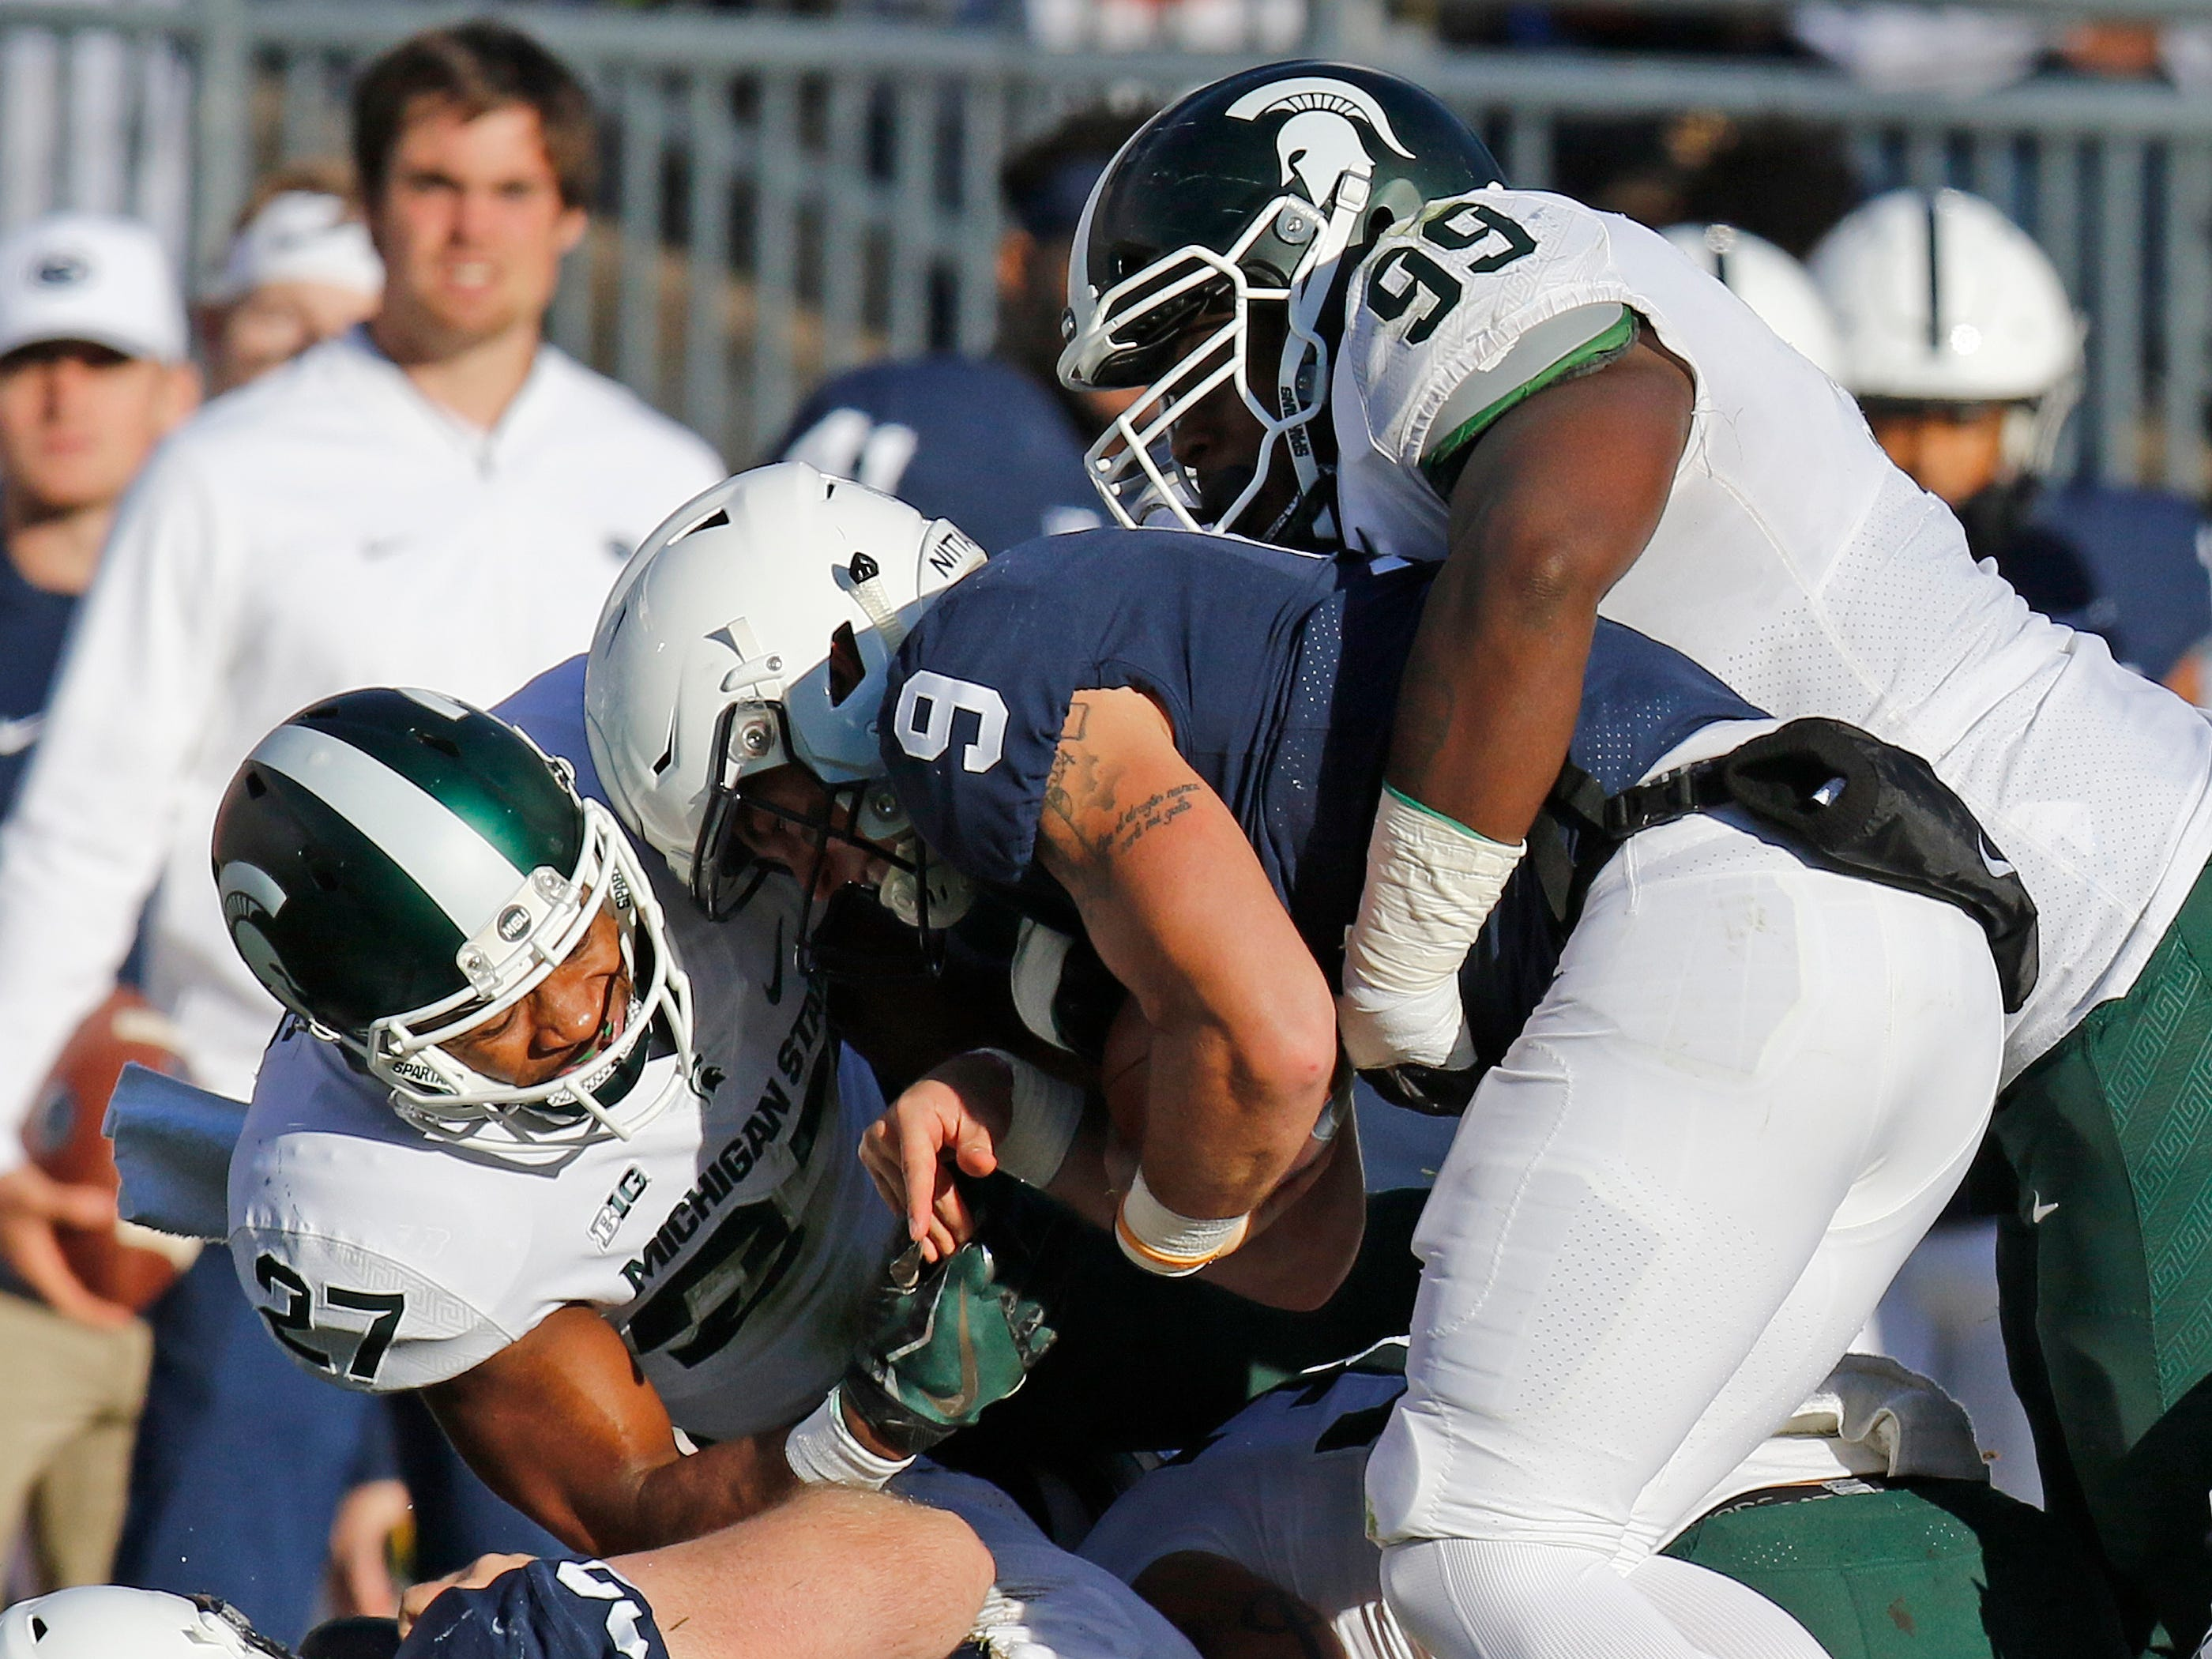 Khari Willis #27 of the Michigan State Spartans and Raequan Williams #99 of the Michigan State Spartans tackle Trace McSorley #9 of the Penn State Nittany Lions on October 13, 2018 at Beaver Stadium in State College, Pennsylvania.